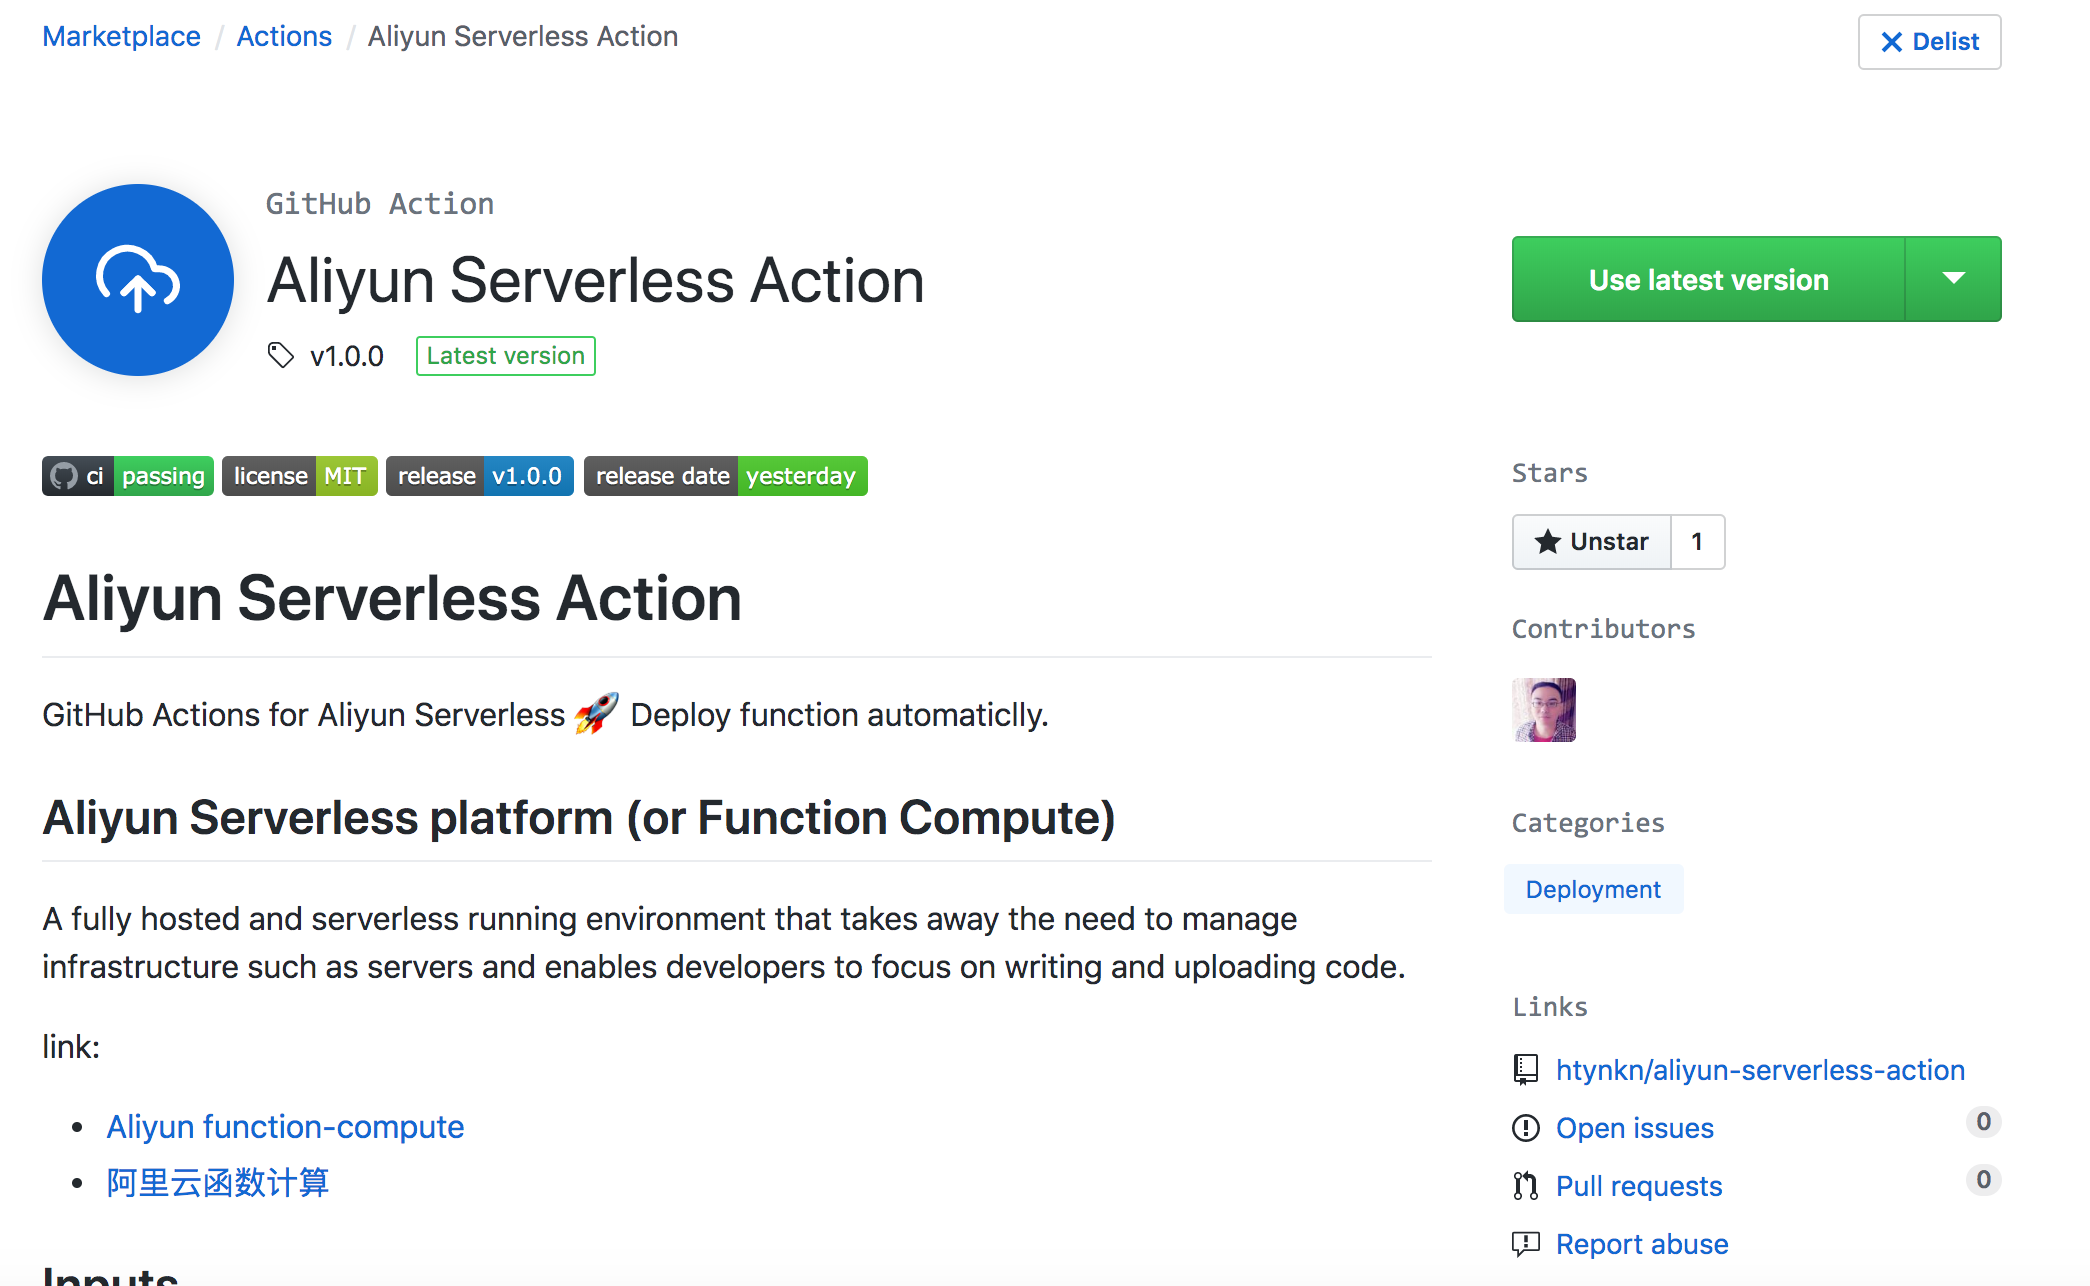 github-action-marketplace.png